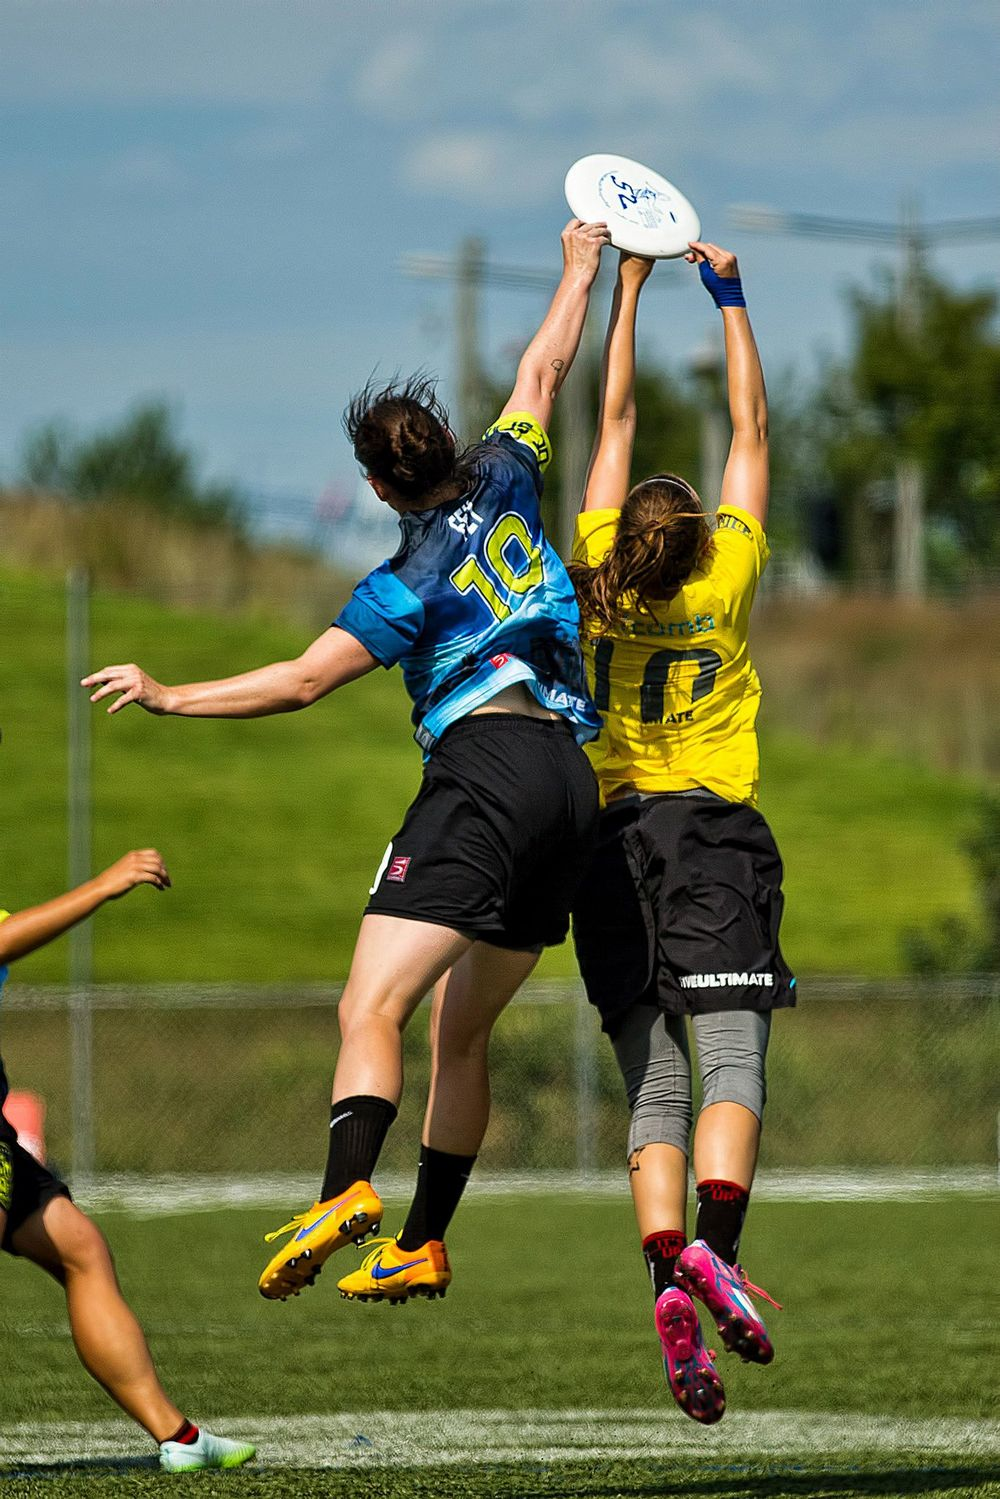 Competition for the disc during the All-Stars vs. D.C. Scandal game. Photo credit Steve Helvin